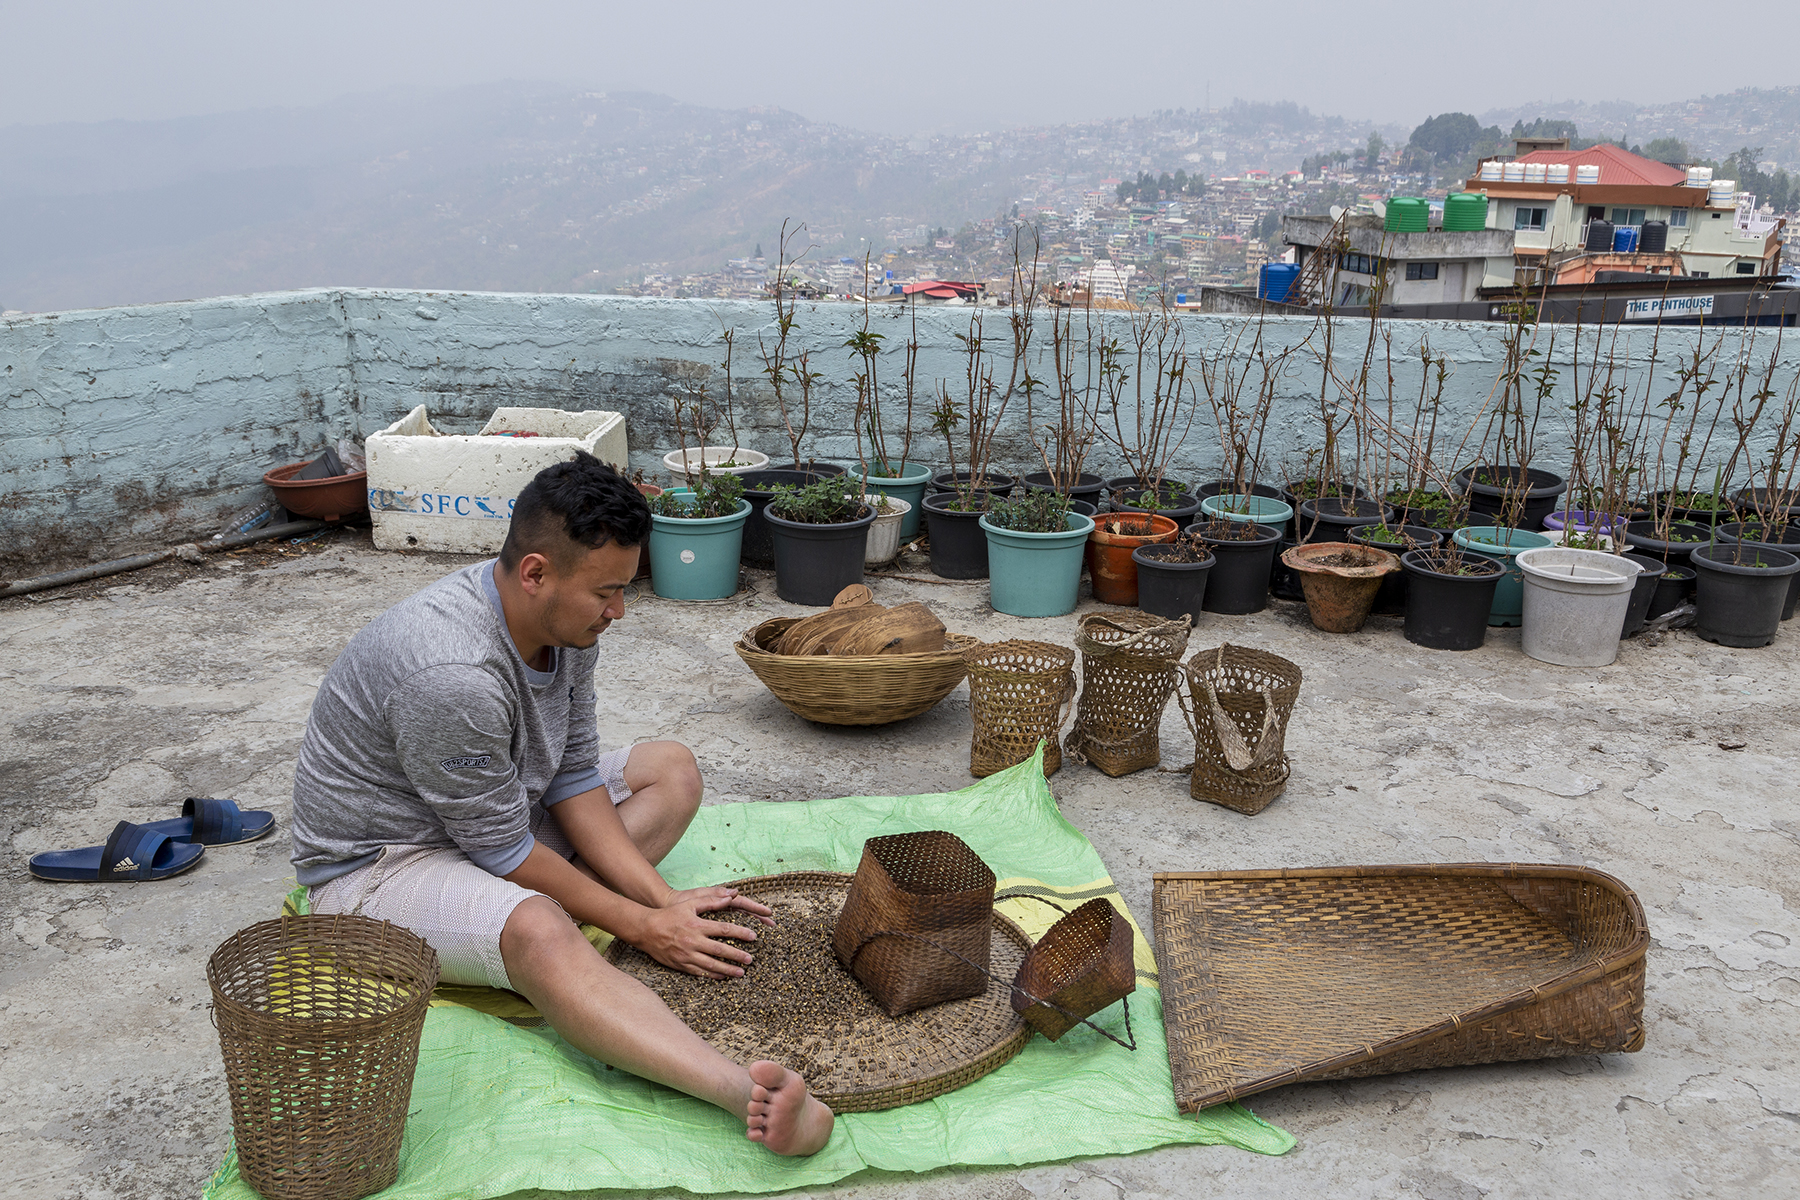 Kilumo wearing a grey T-shirt and beige shorts sits on the ground on the terrace, legs outstretched, cleaning dry brown seeds. There are several woven cane items around him, including a large winnow and small baskets. Several flowerpots containing plants with barely sprouting leaves are clustered next to one of the low terrace walls painted pale blue. In the background are mist-covered houses on hills.